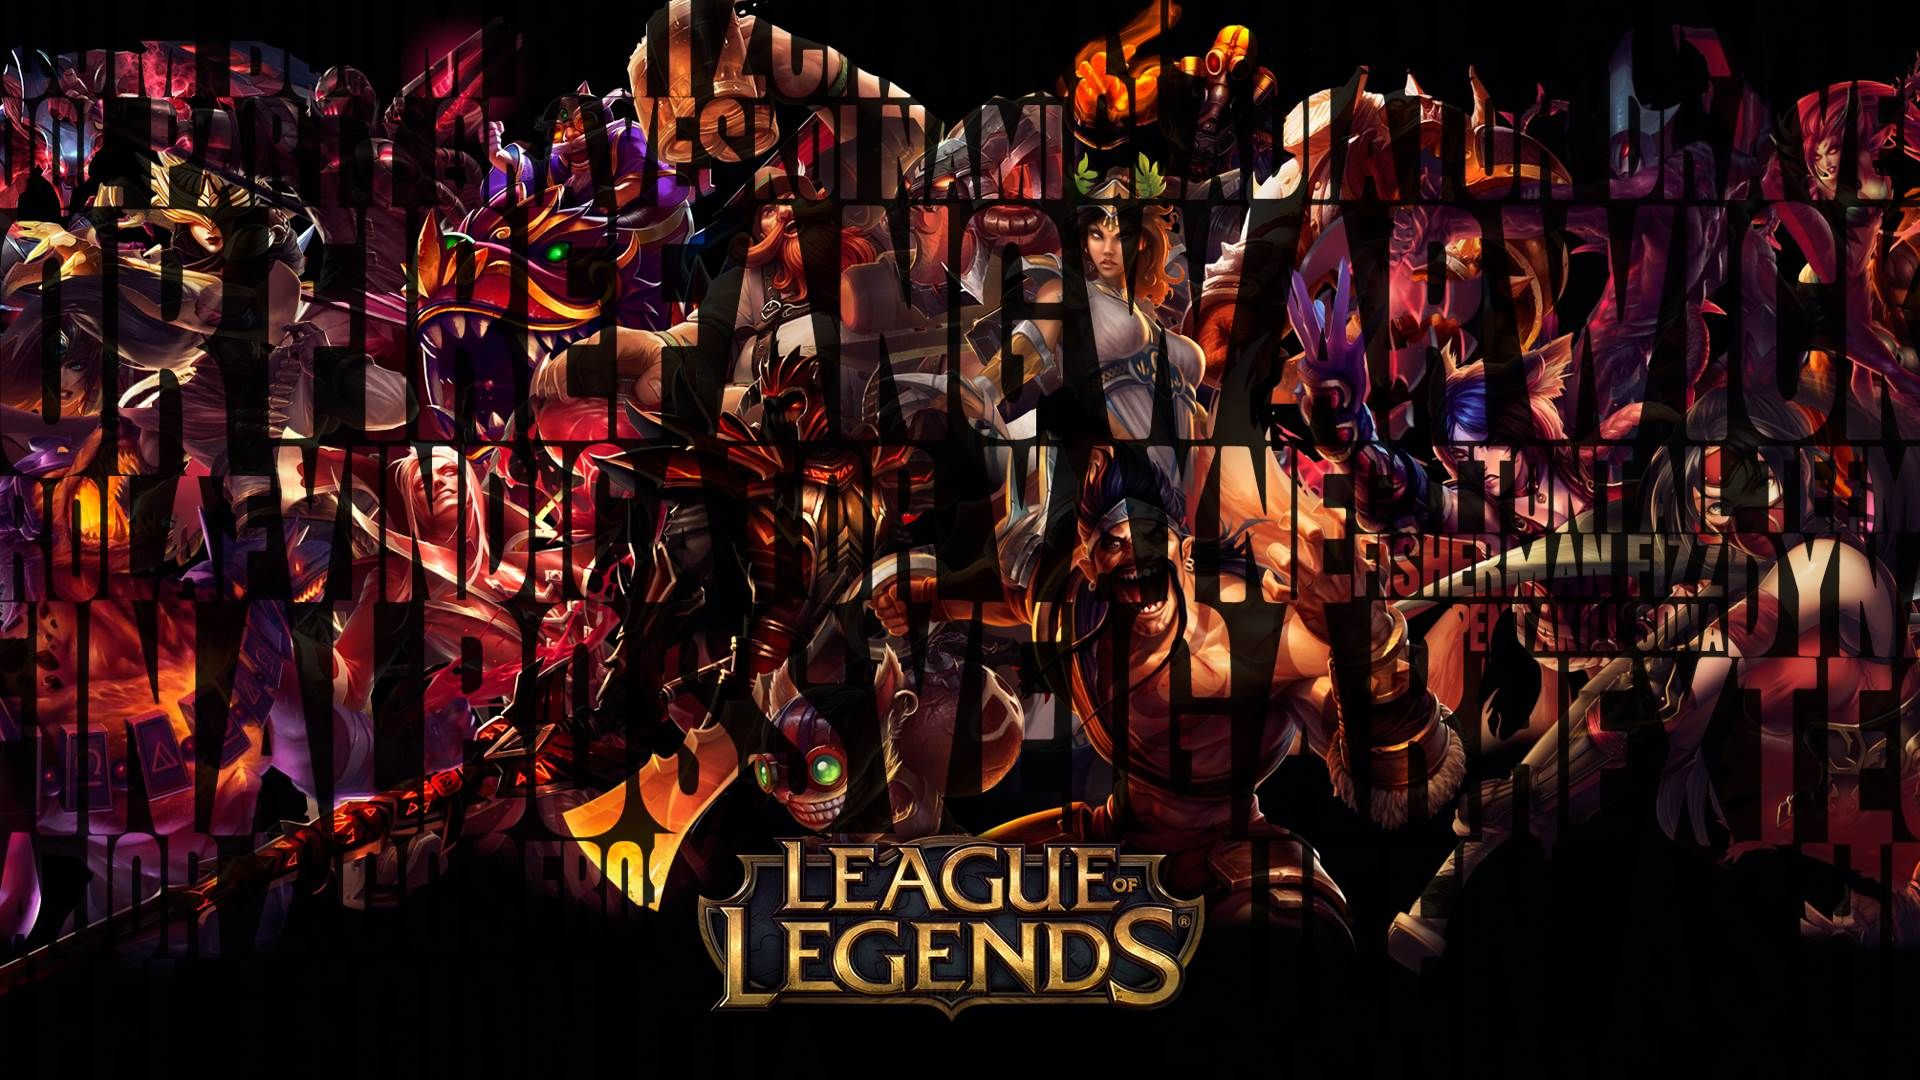 League Of Legends Wallpapers Hd Group 72 Lol Wallpaper Adorable Wallpapers League Of Legends League Of Legends Game Hd Wallpaper